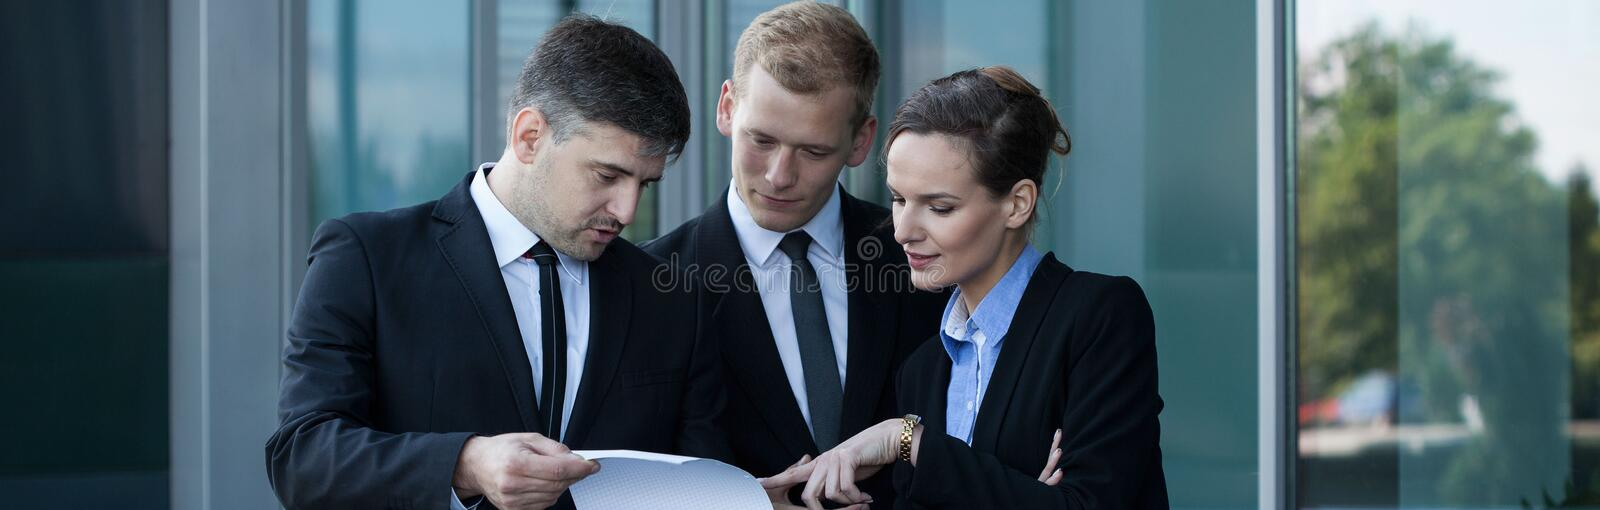 Talking before business meeting stock images